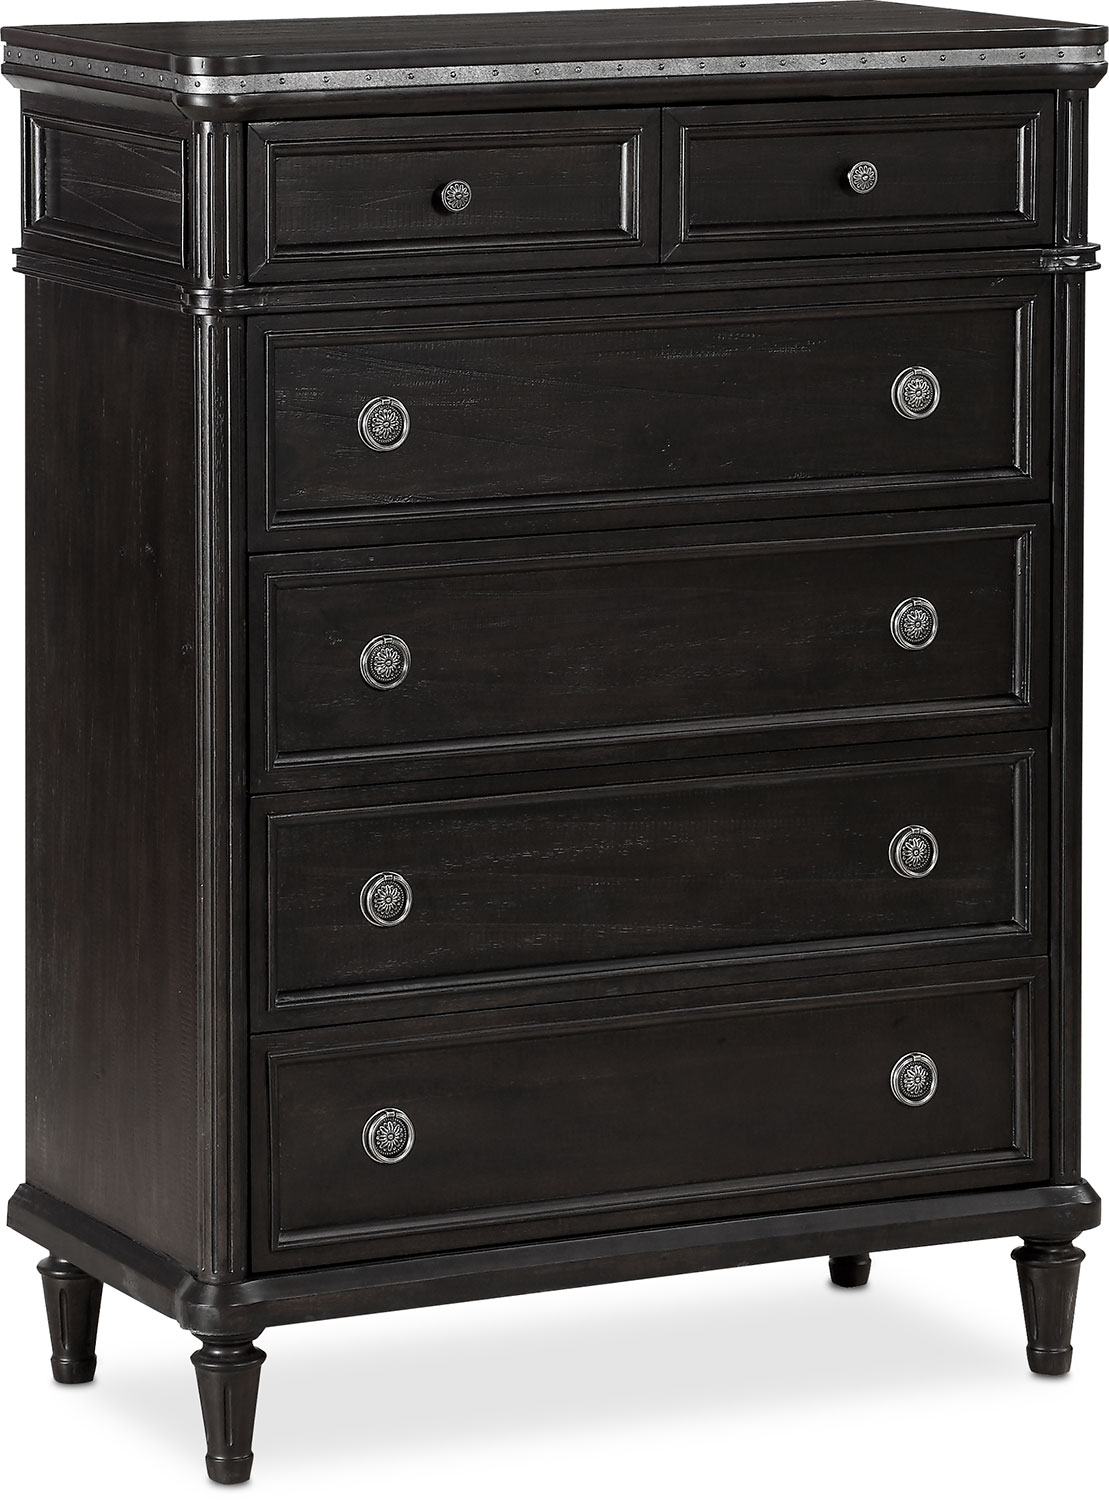 Bedroom Furniture - Berwick Chest